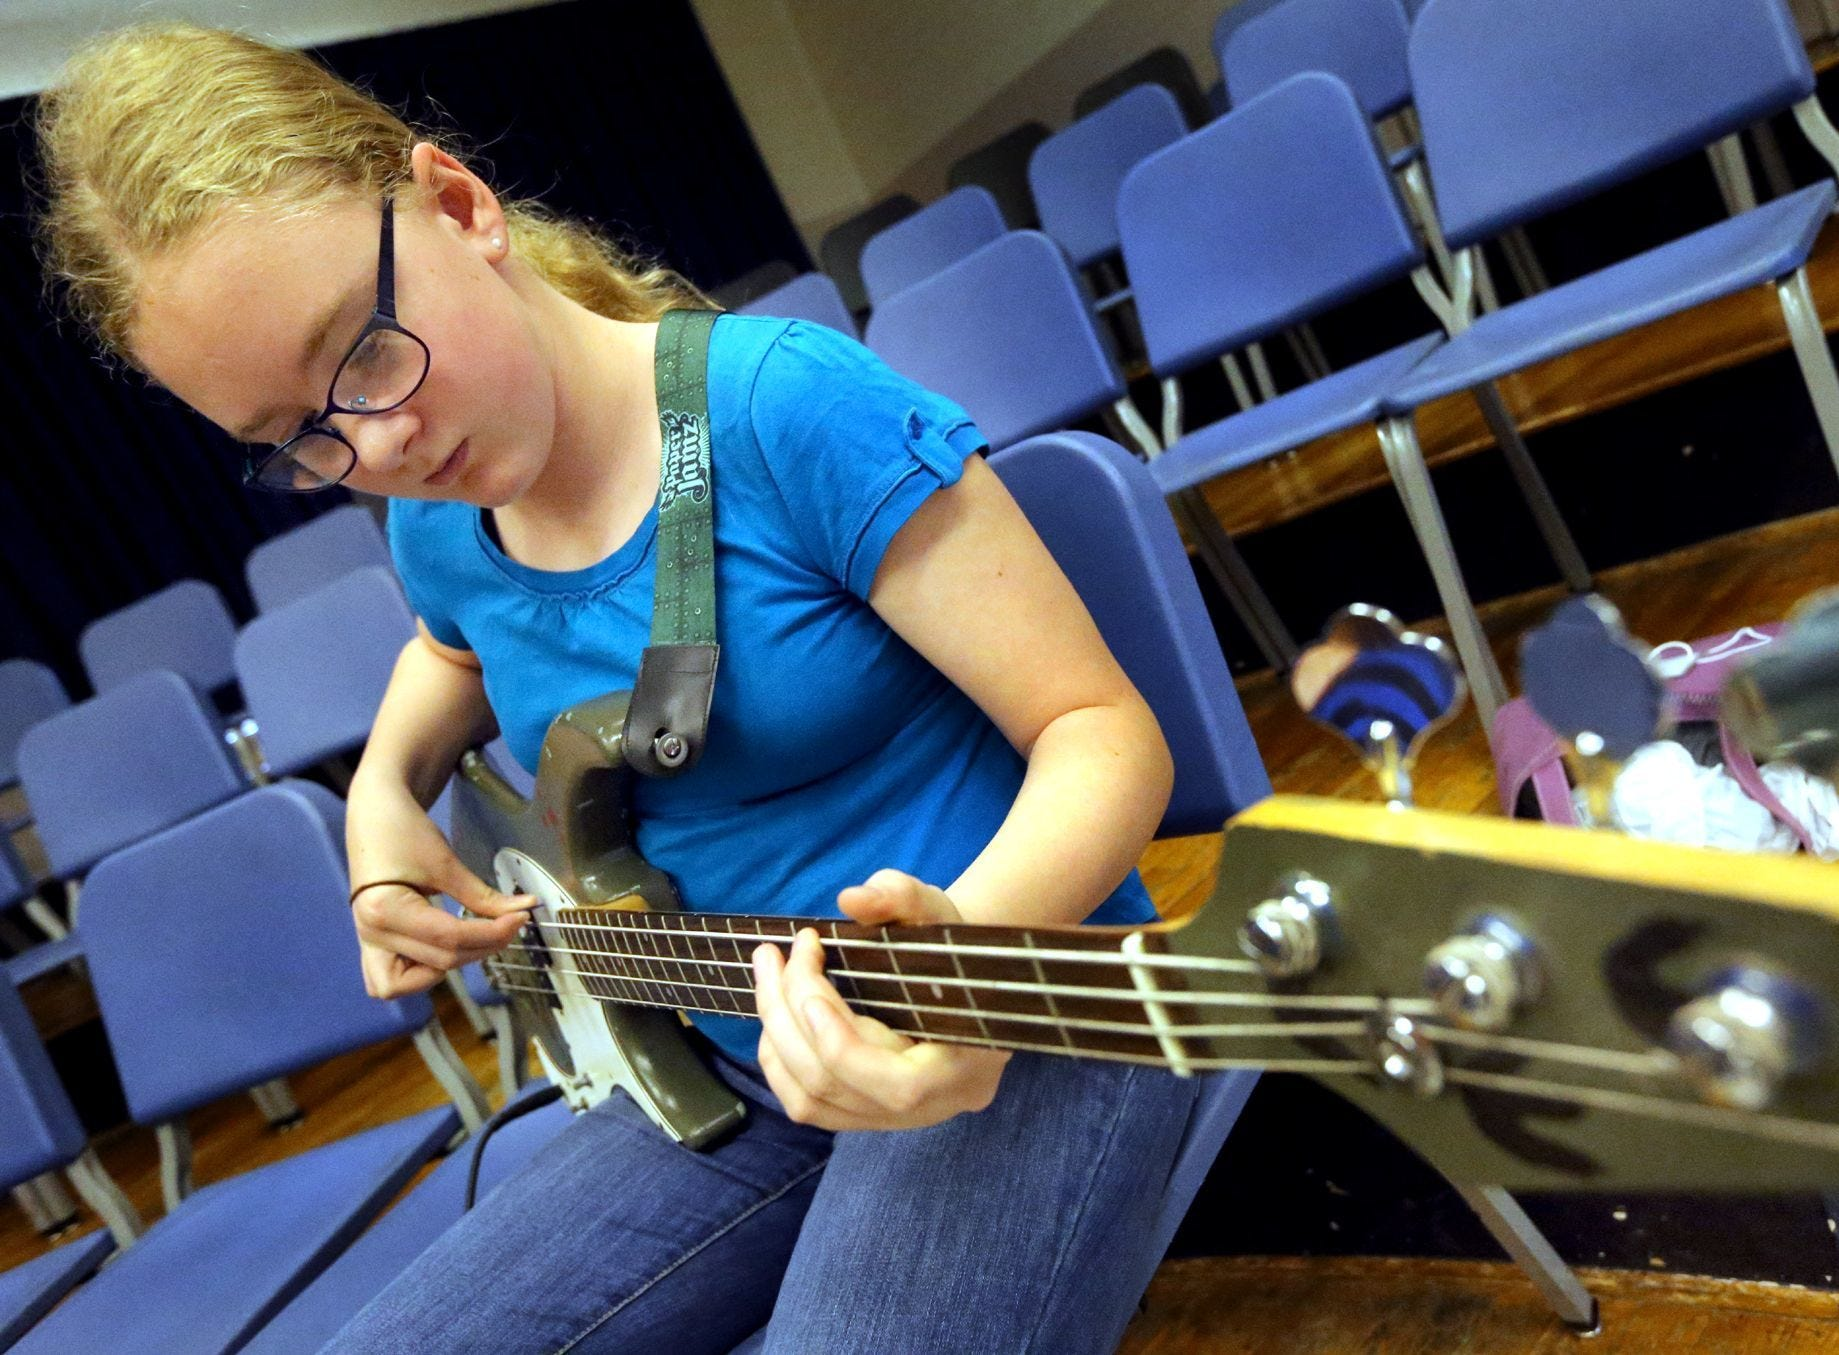 MTSU has hosted the Southern Girls Rock n Roll Camp for several years.